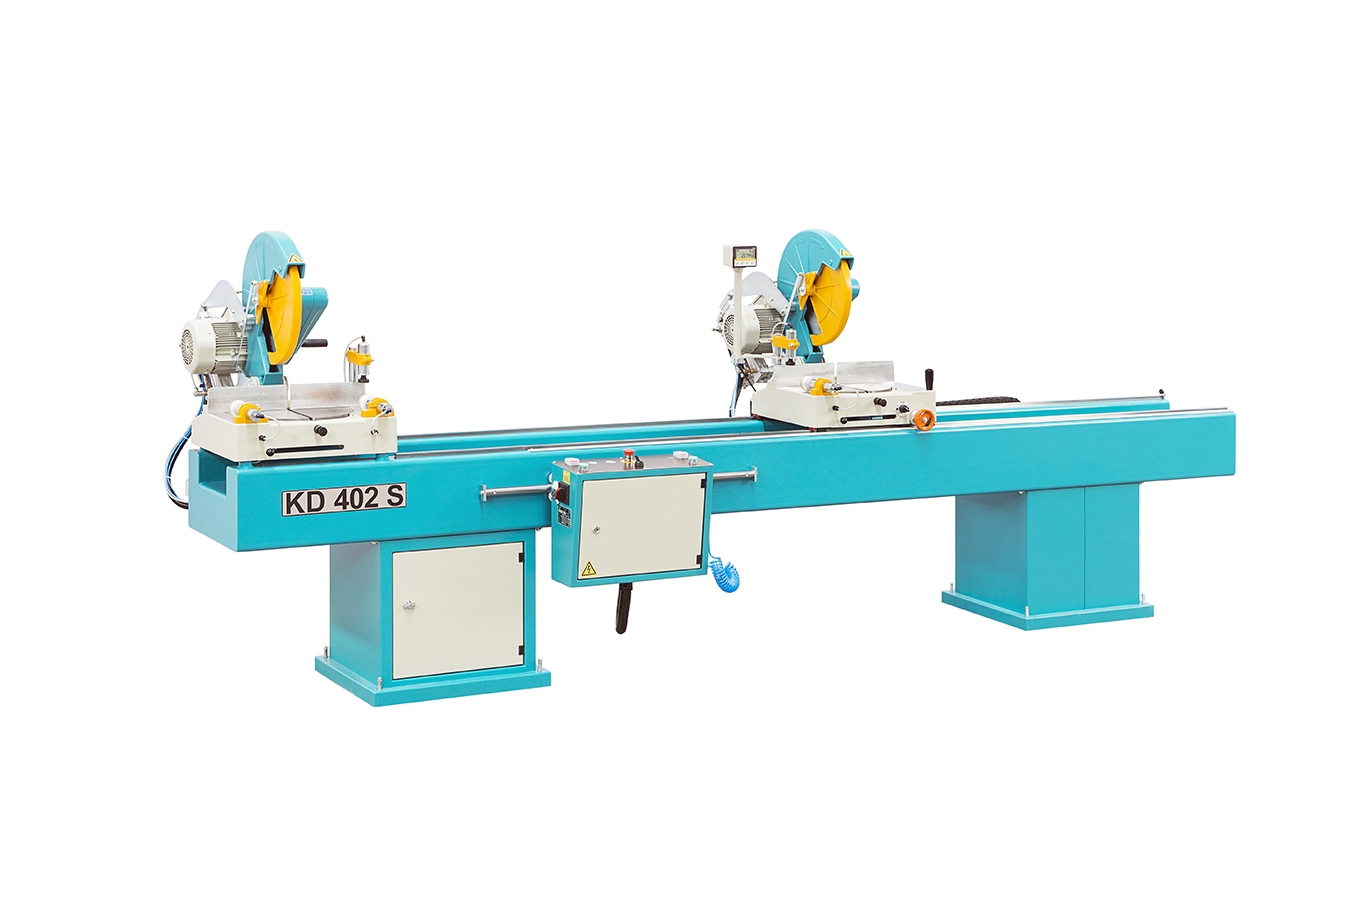 NORMA-02 SA Semi-Automatic Double Head Miter Saw 16″ (400 mm) with Digital Read-Out 1 (6)